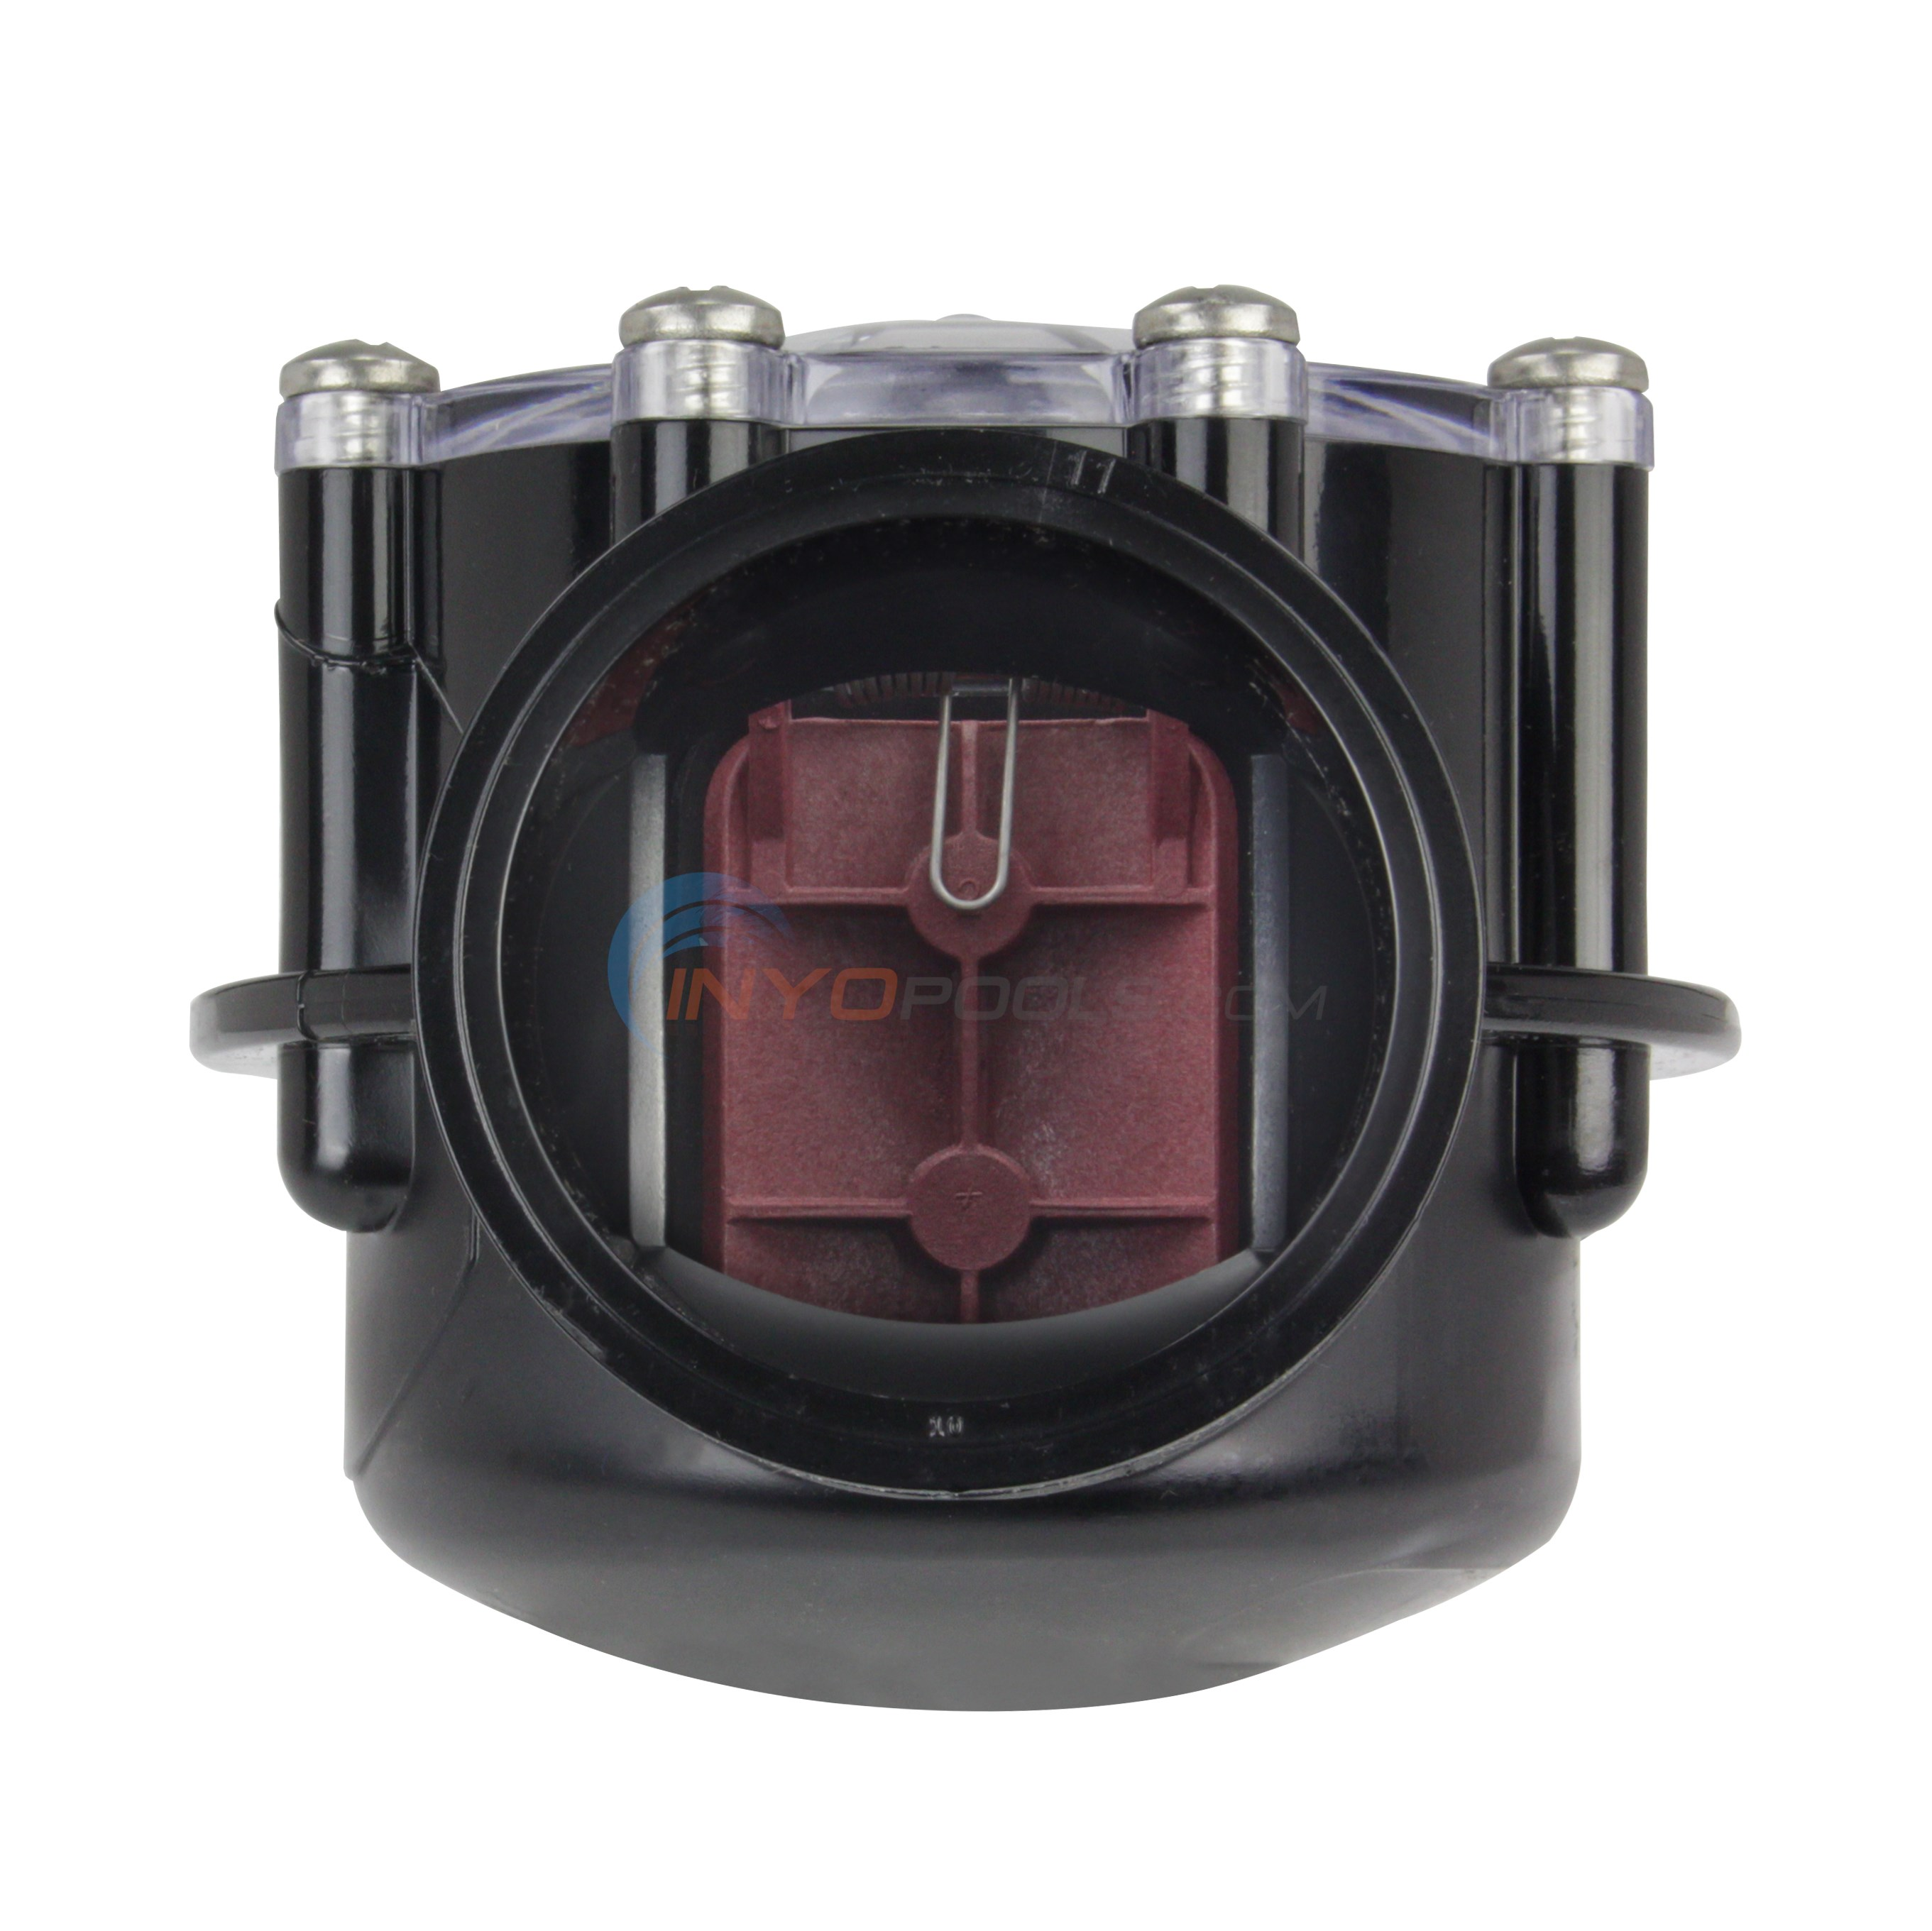 Jandy Check Valve 2 Inside 2 1/2 Outside - 7305